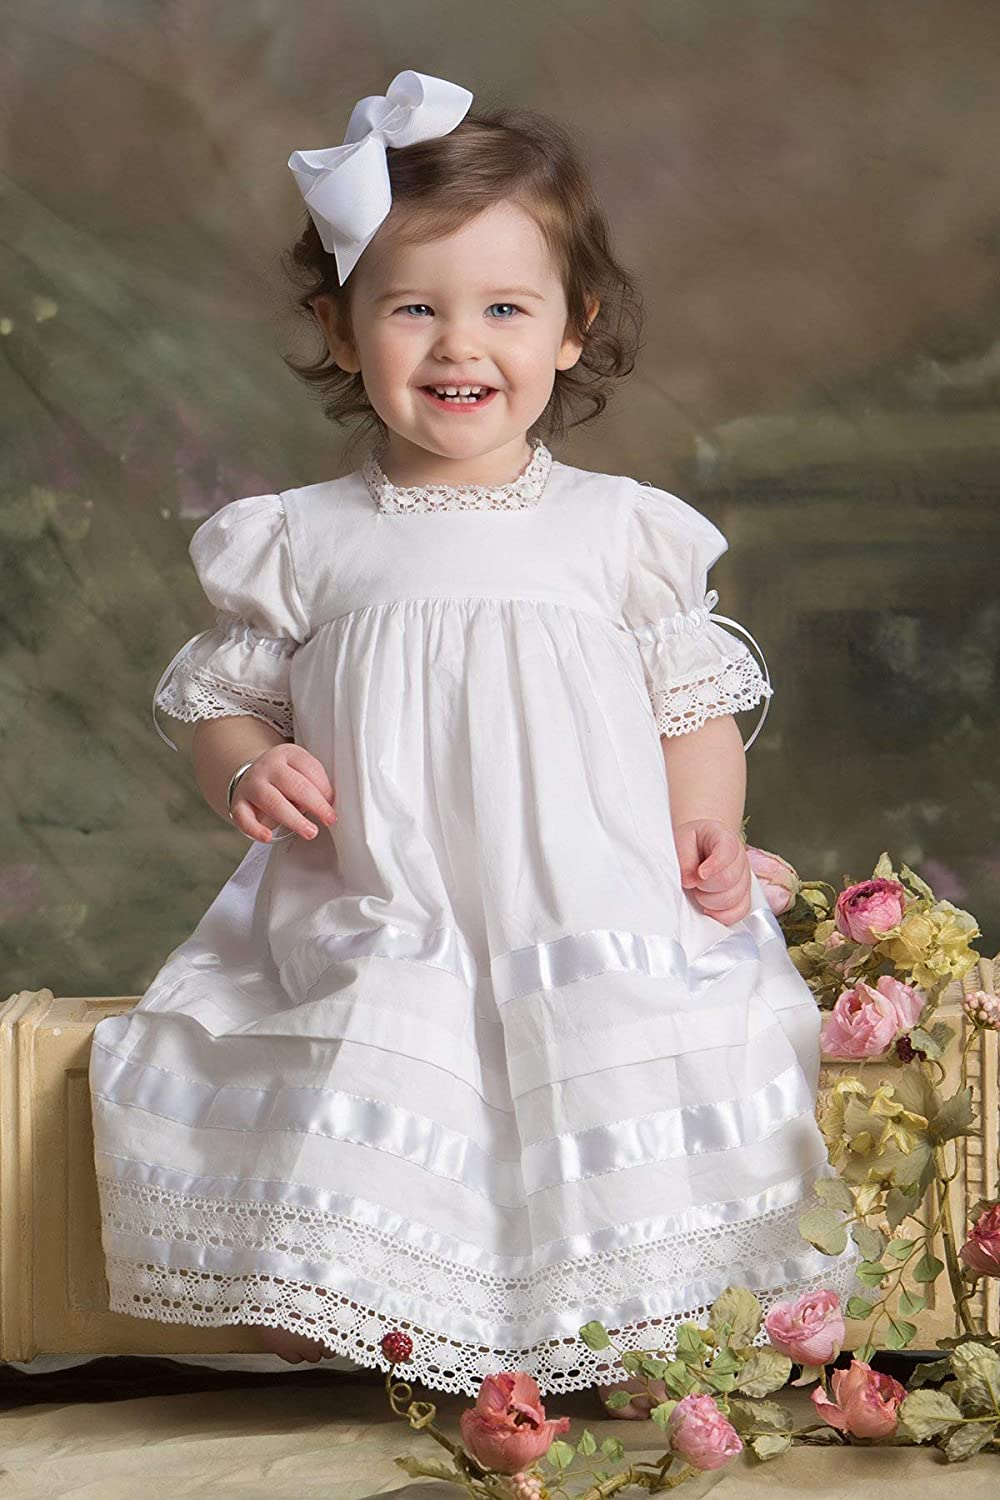 610bff5e35 Amazon.com  Girls Heirloom Baptism Dress Toddler and little Girls Communion  Dress Flower Girls  Handmade